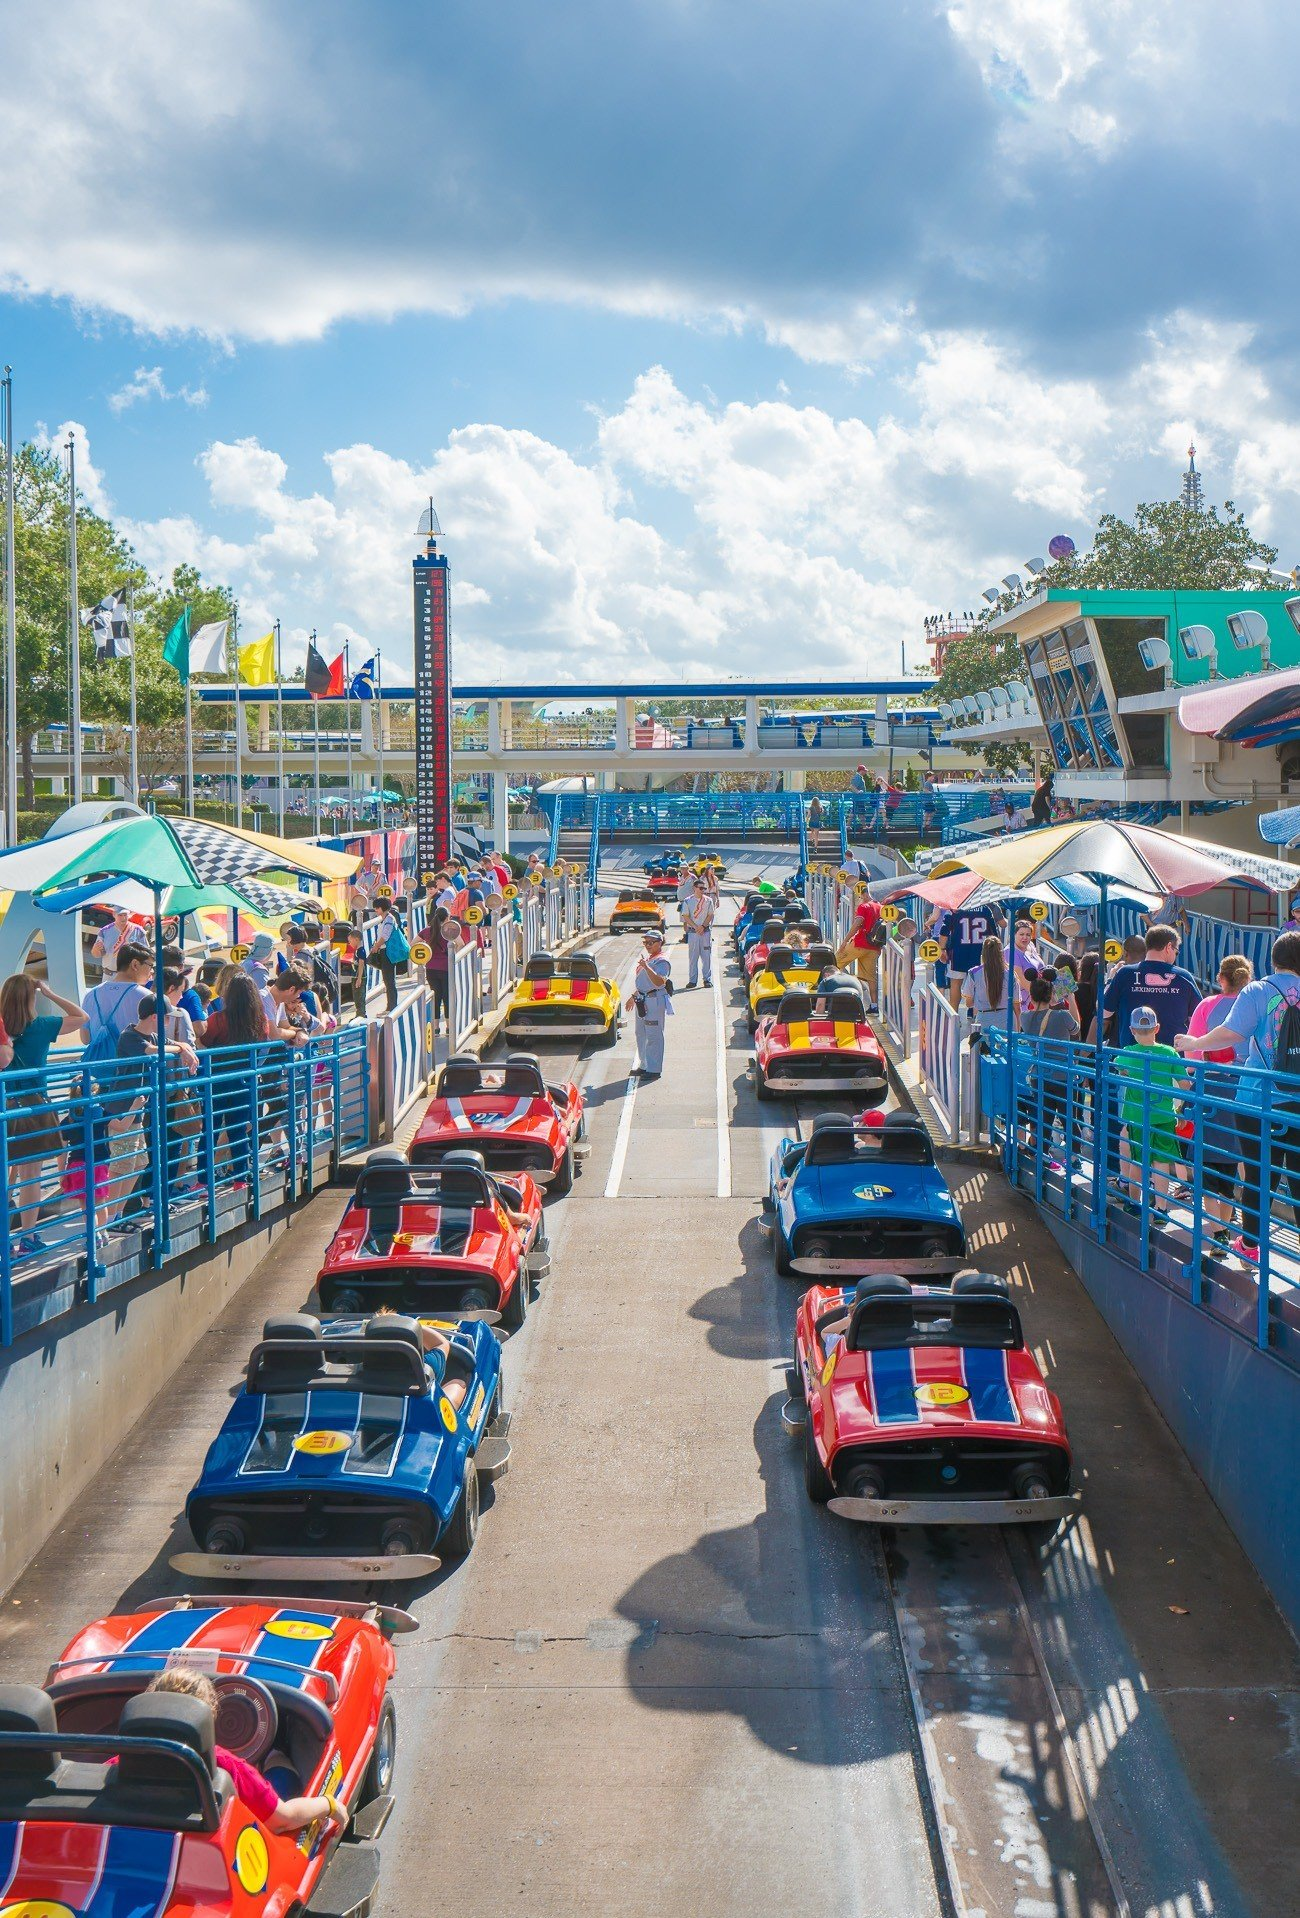 With our Disney World VIP tour we did wait in line for Tomorrowland Speedway at Magic Kingdom.